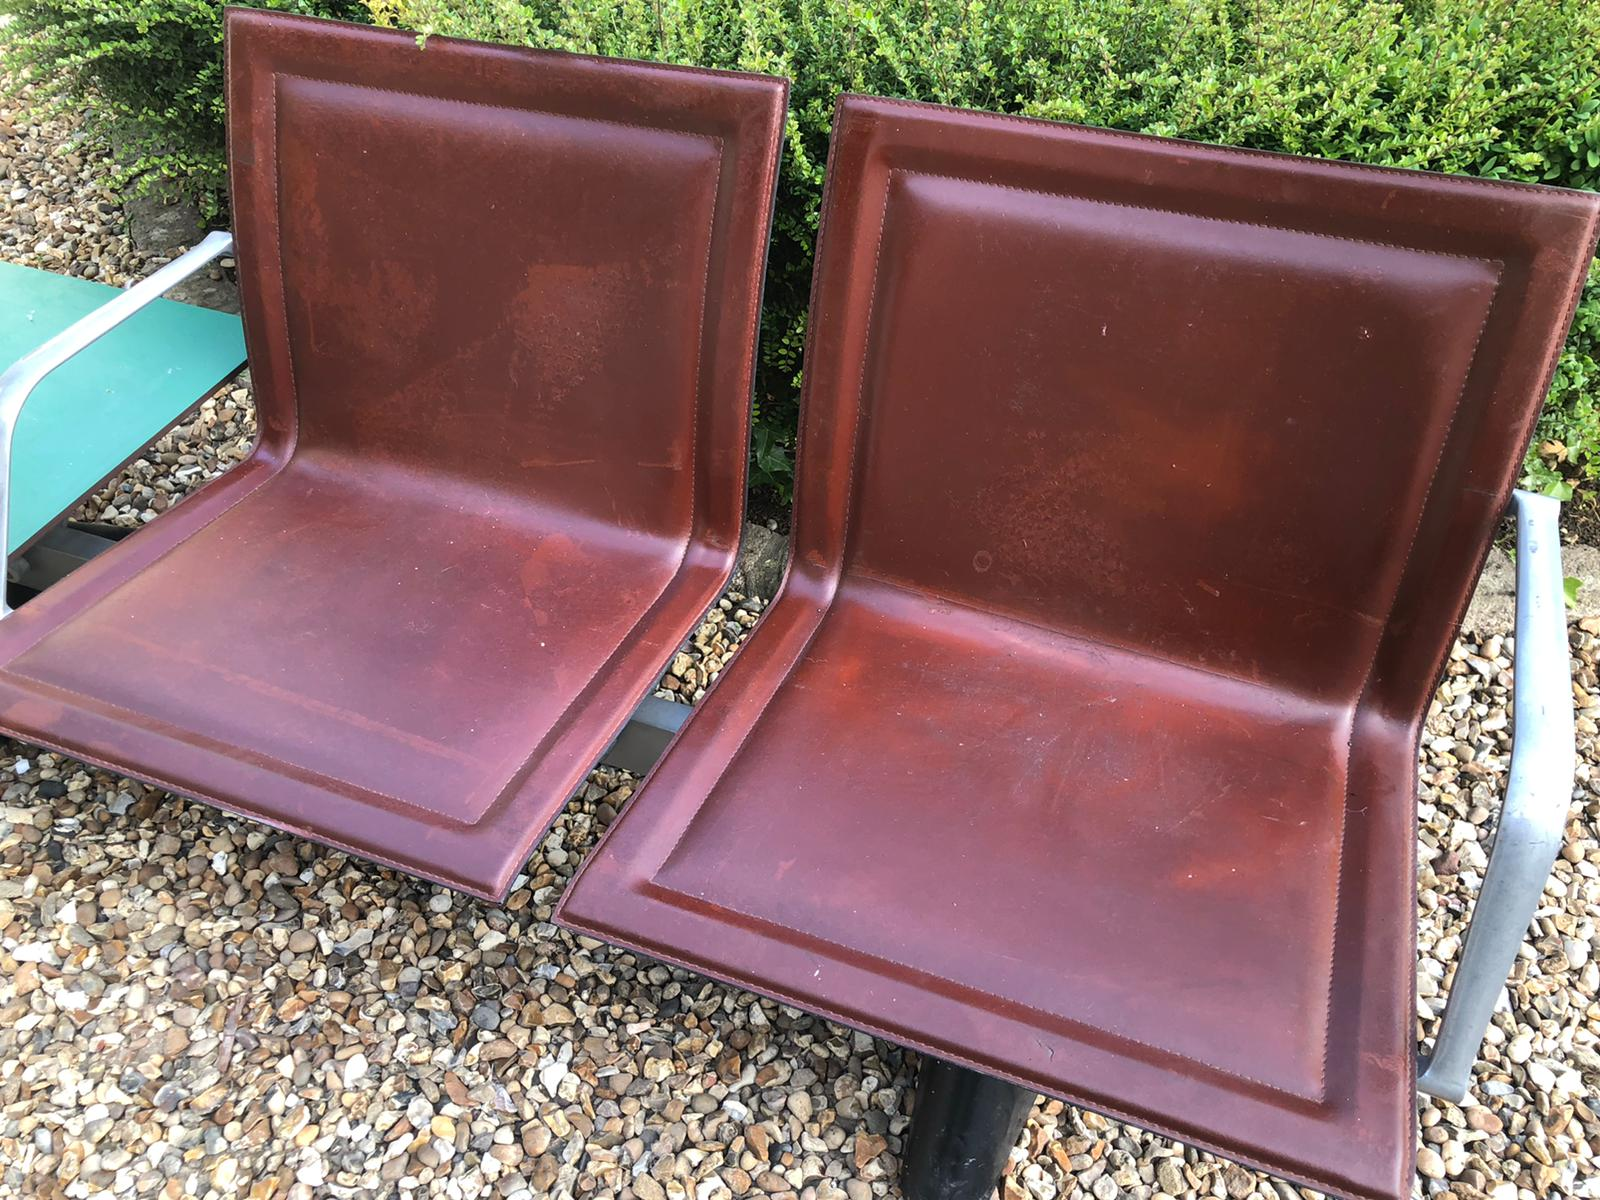 AN ITALIAN STEEL, ALUMINIUM AND LEATHER TWO SEATER BENCH Brown leather covers with aluminium - Image 2 of 3